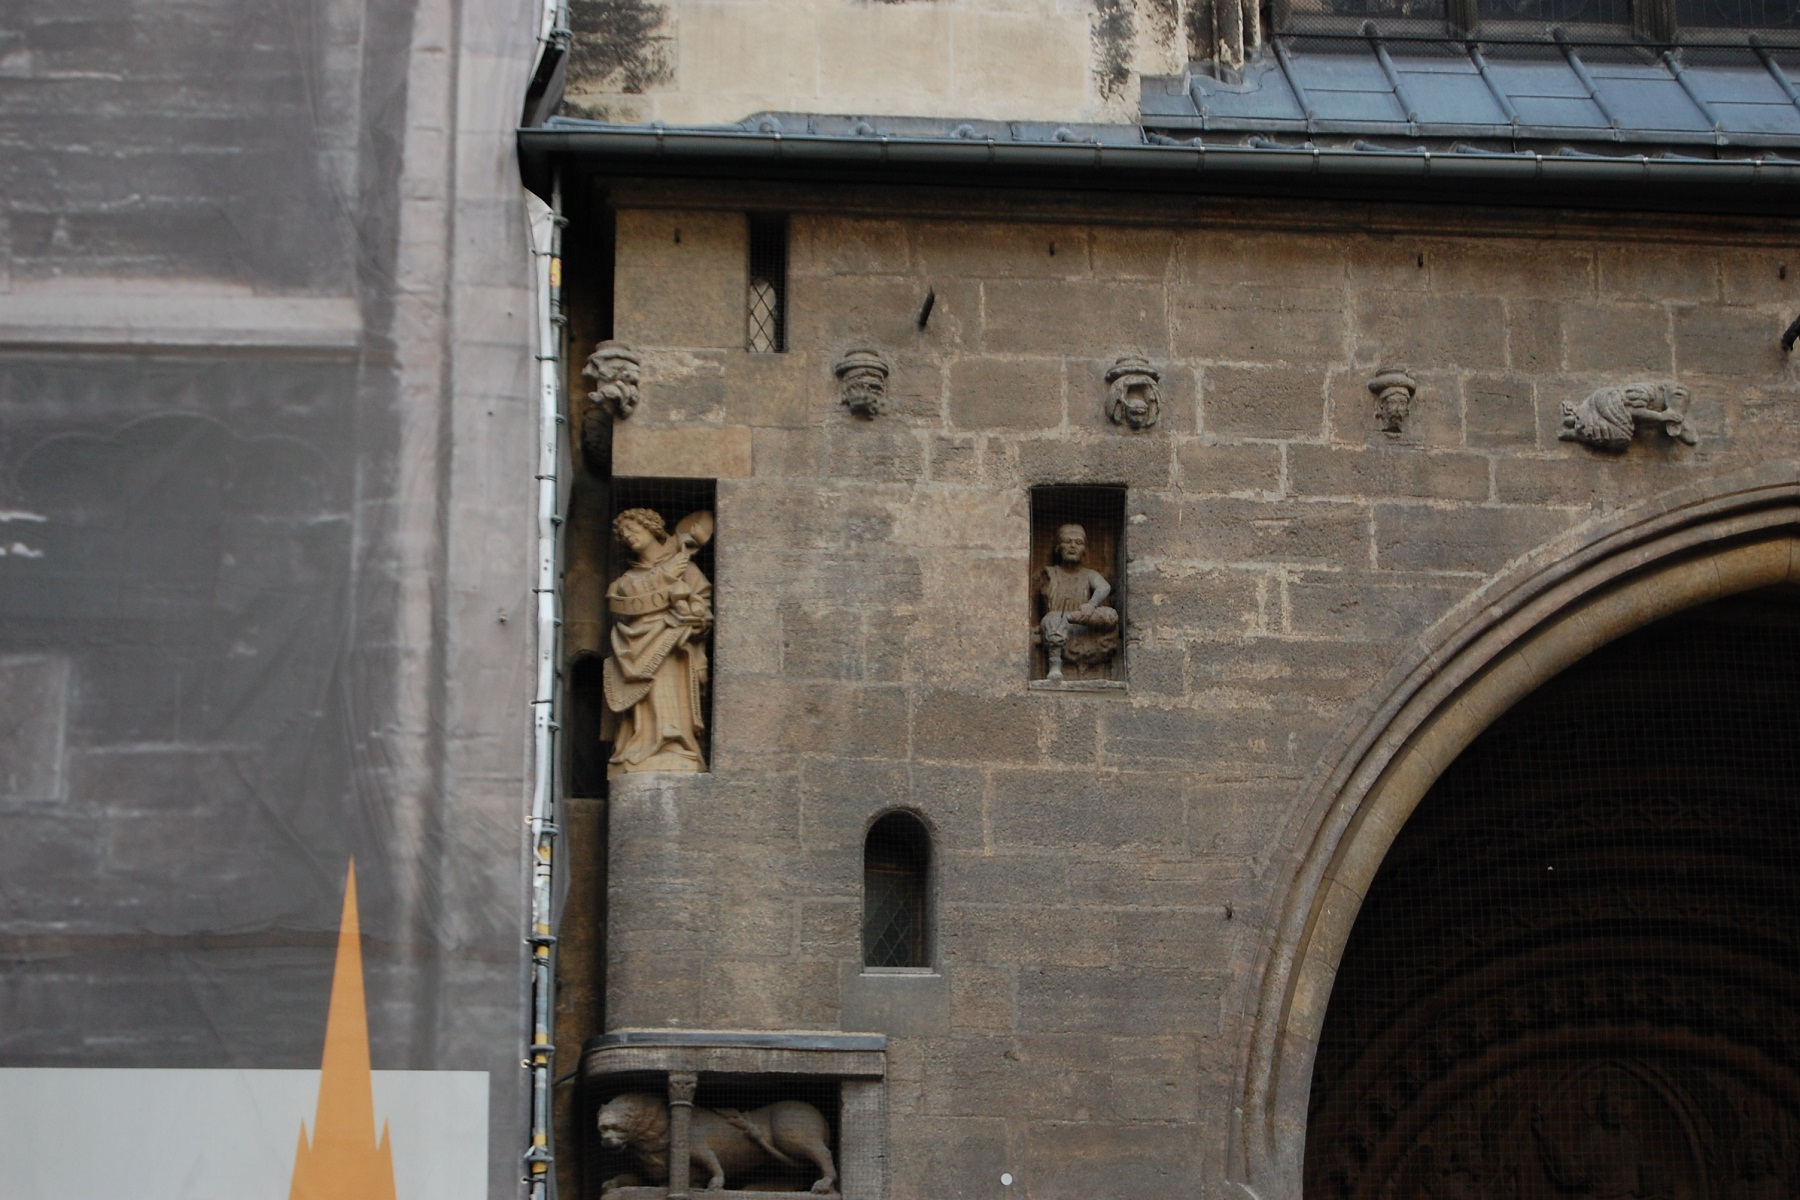 St Stephan Cathedral, Vienna, Austria, Statues inside the wall